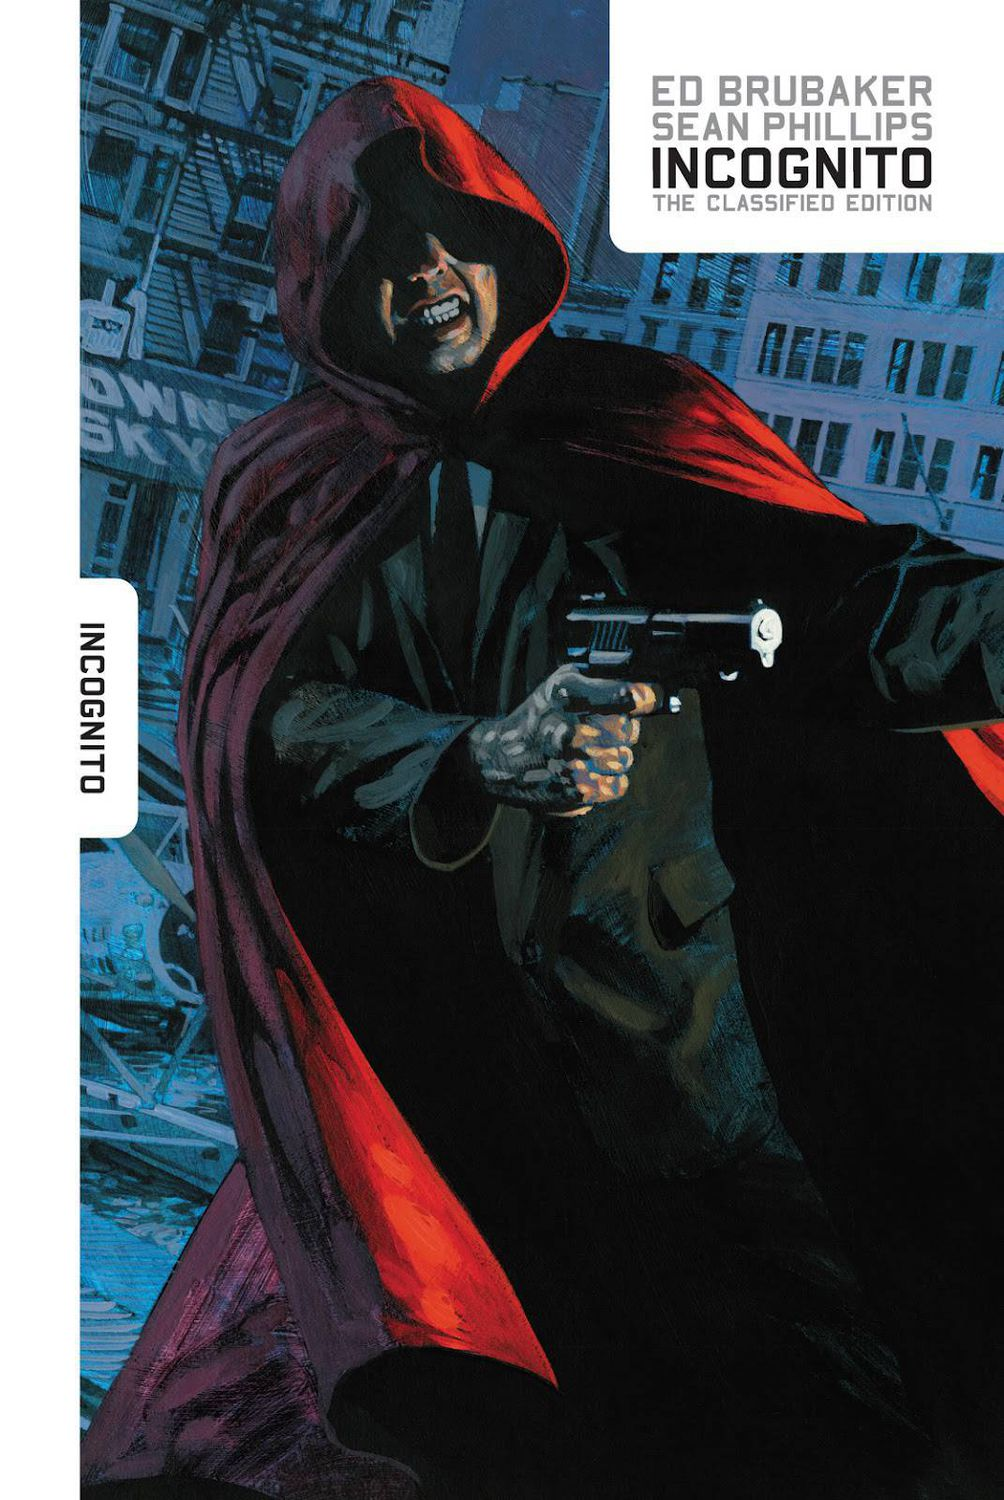 Incognito Classified Edition by Ed Brubaker & Sean Phillips HC